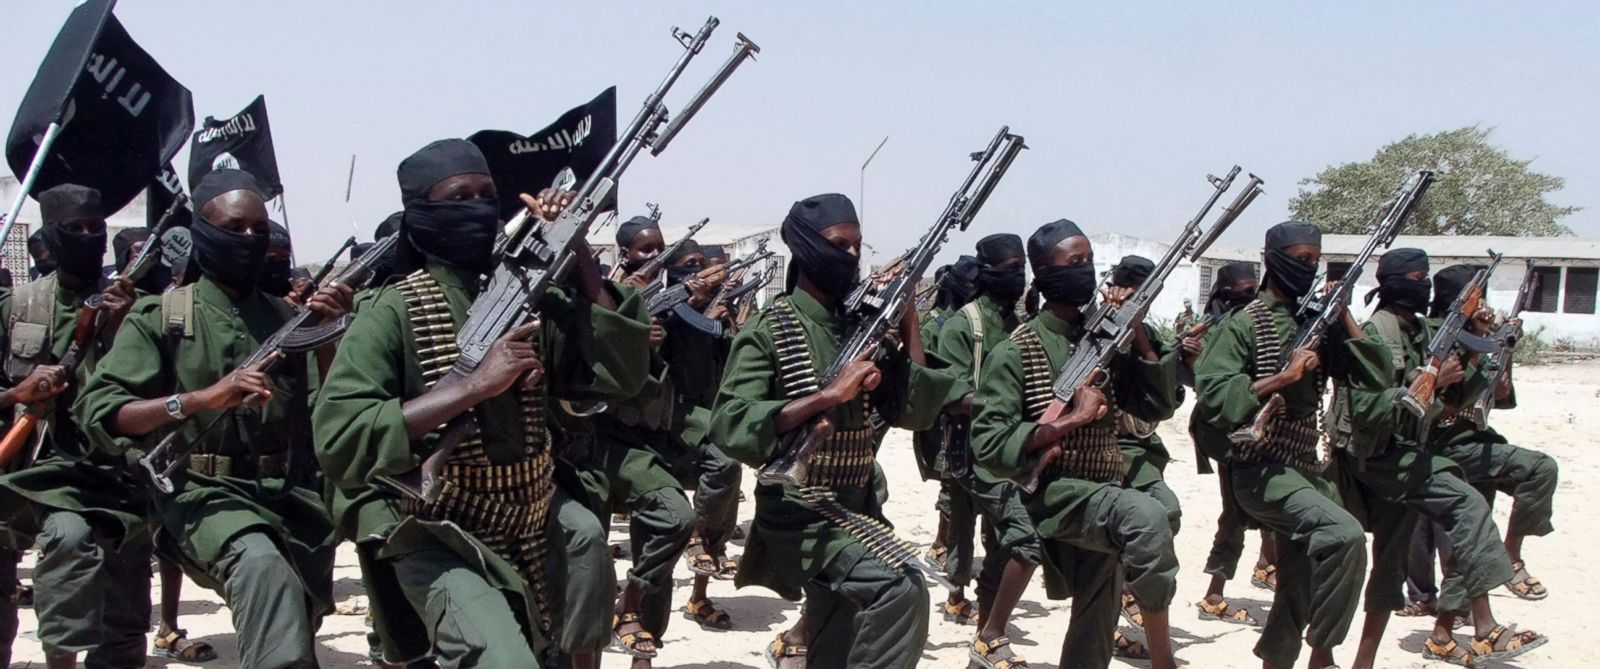 At Least 17 Killed In Somalia In Suicide Attack By Al-Shabab Militants